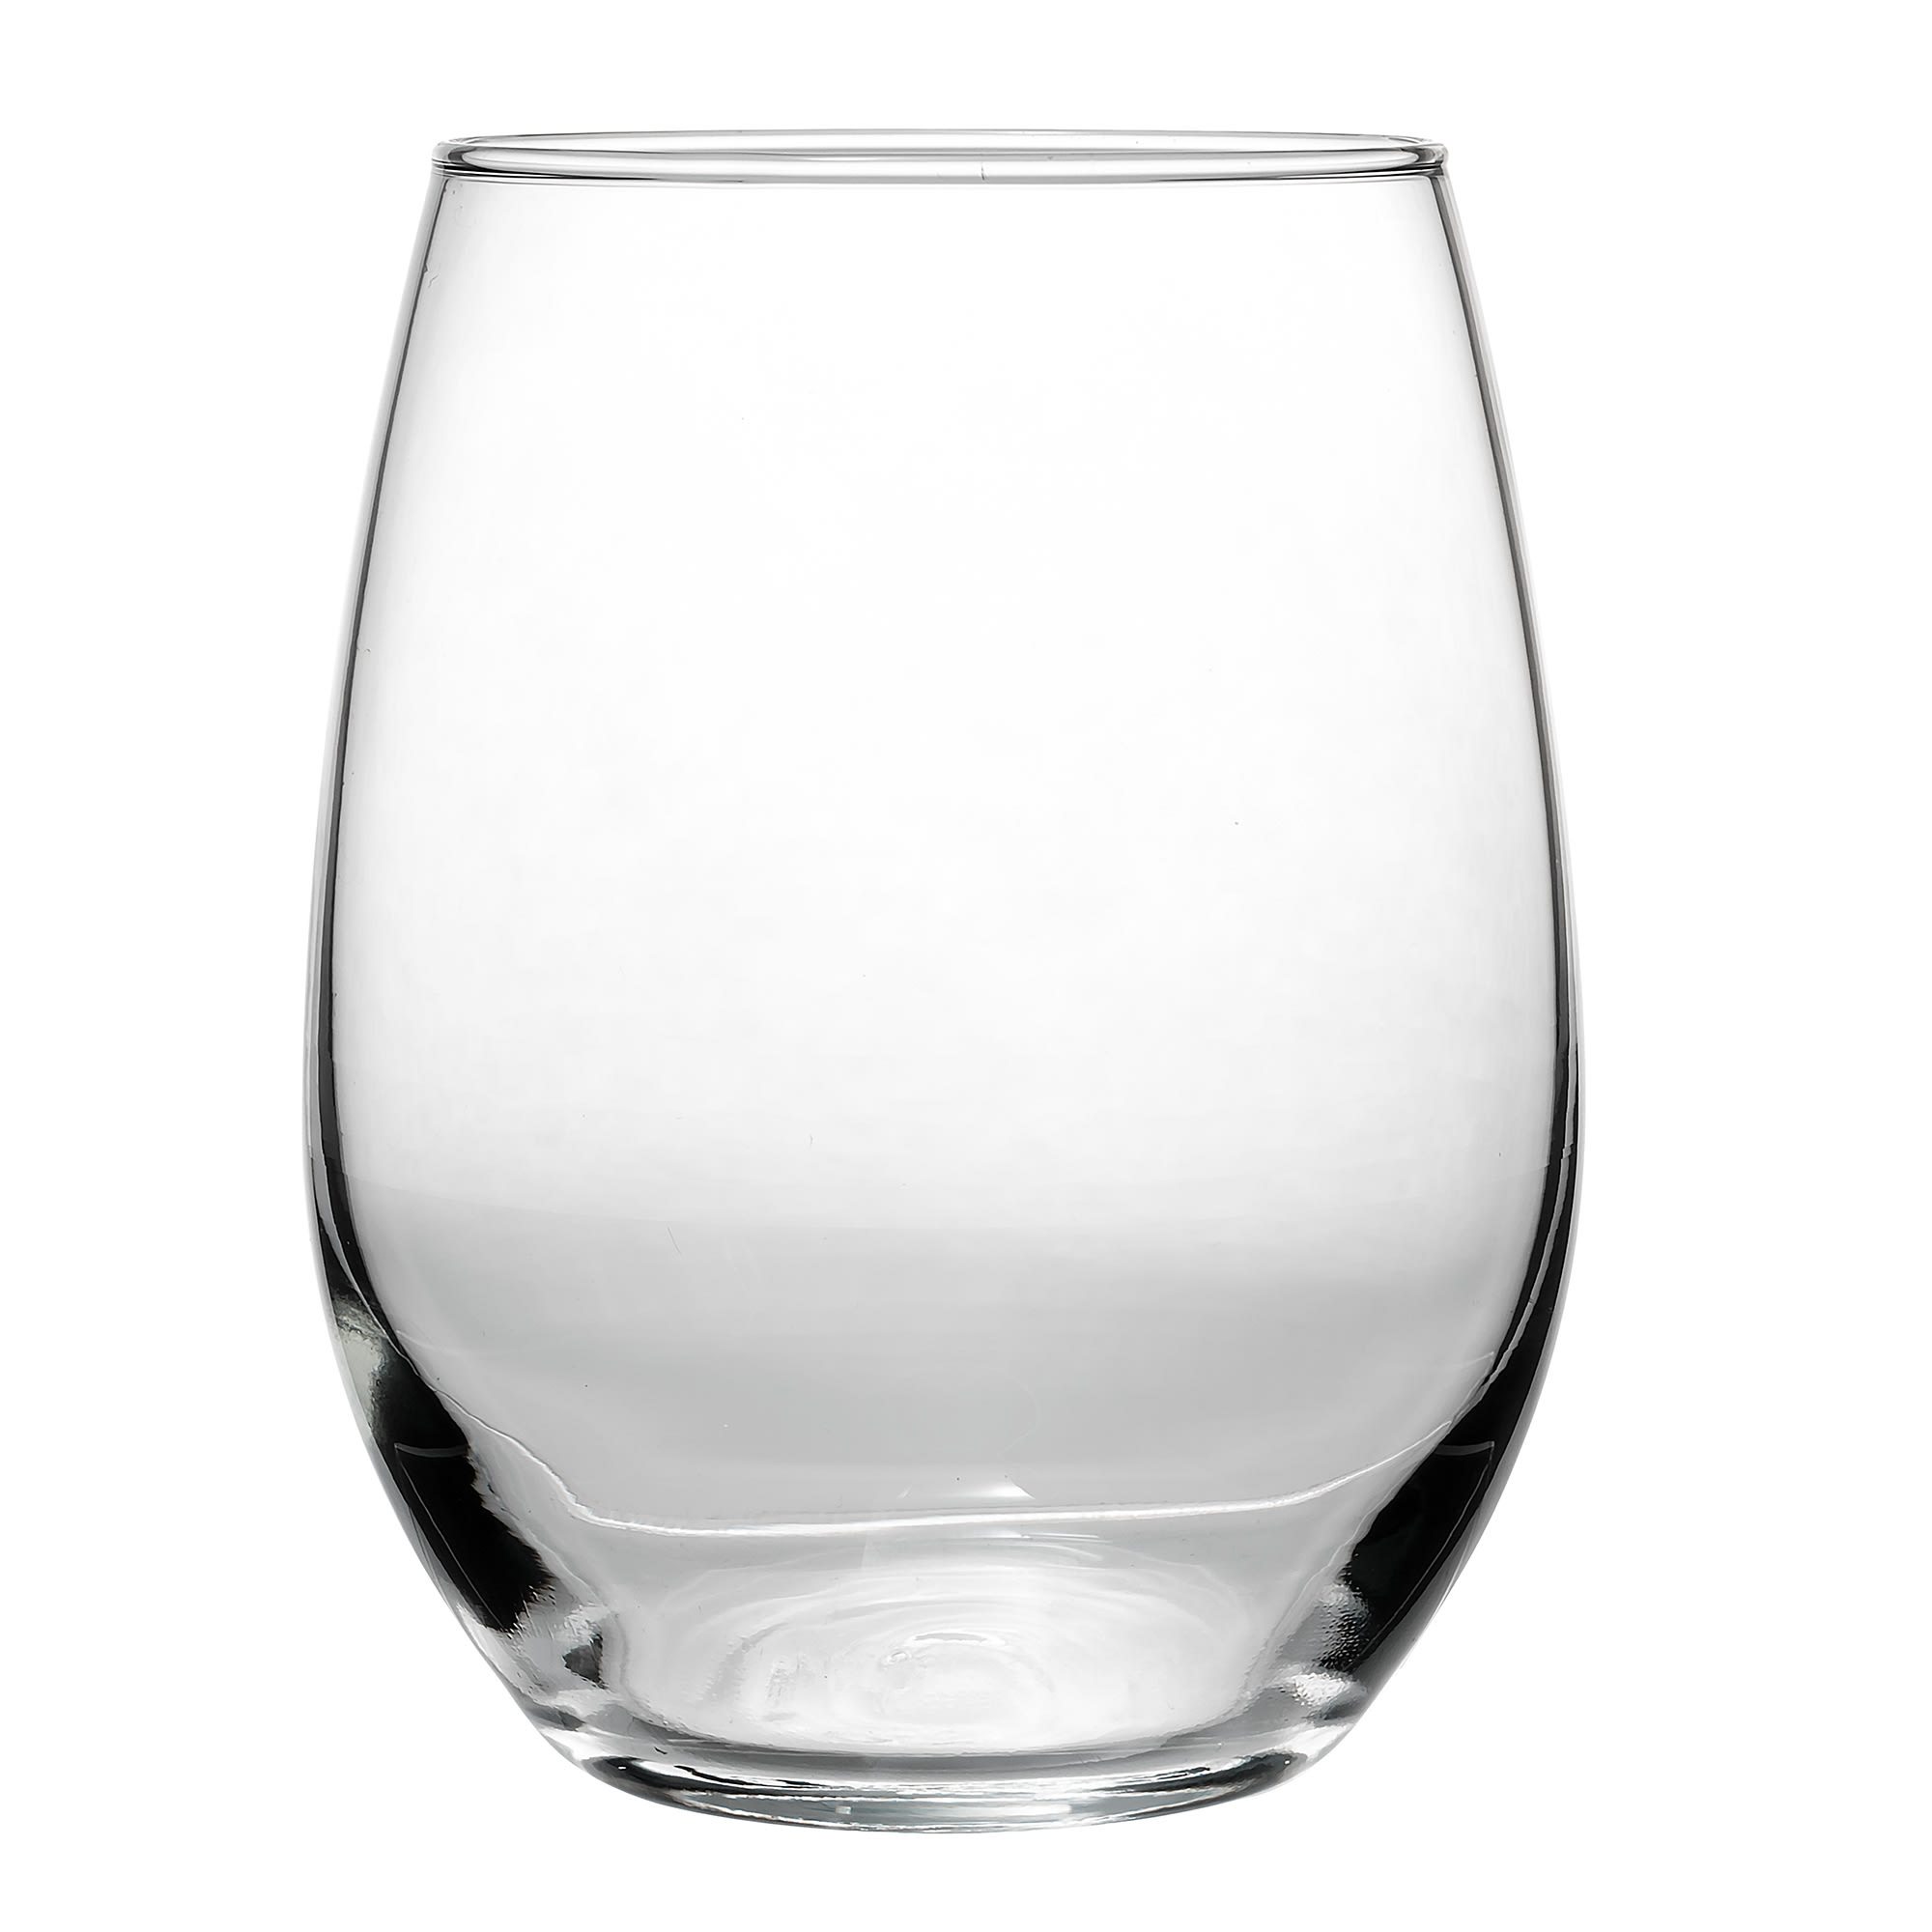 Libbey 213 15 oz Stemless Wine Glass